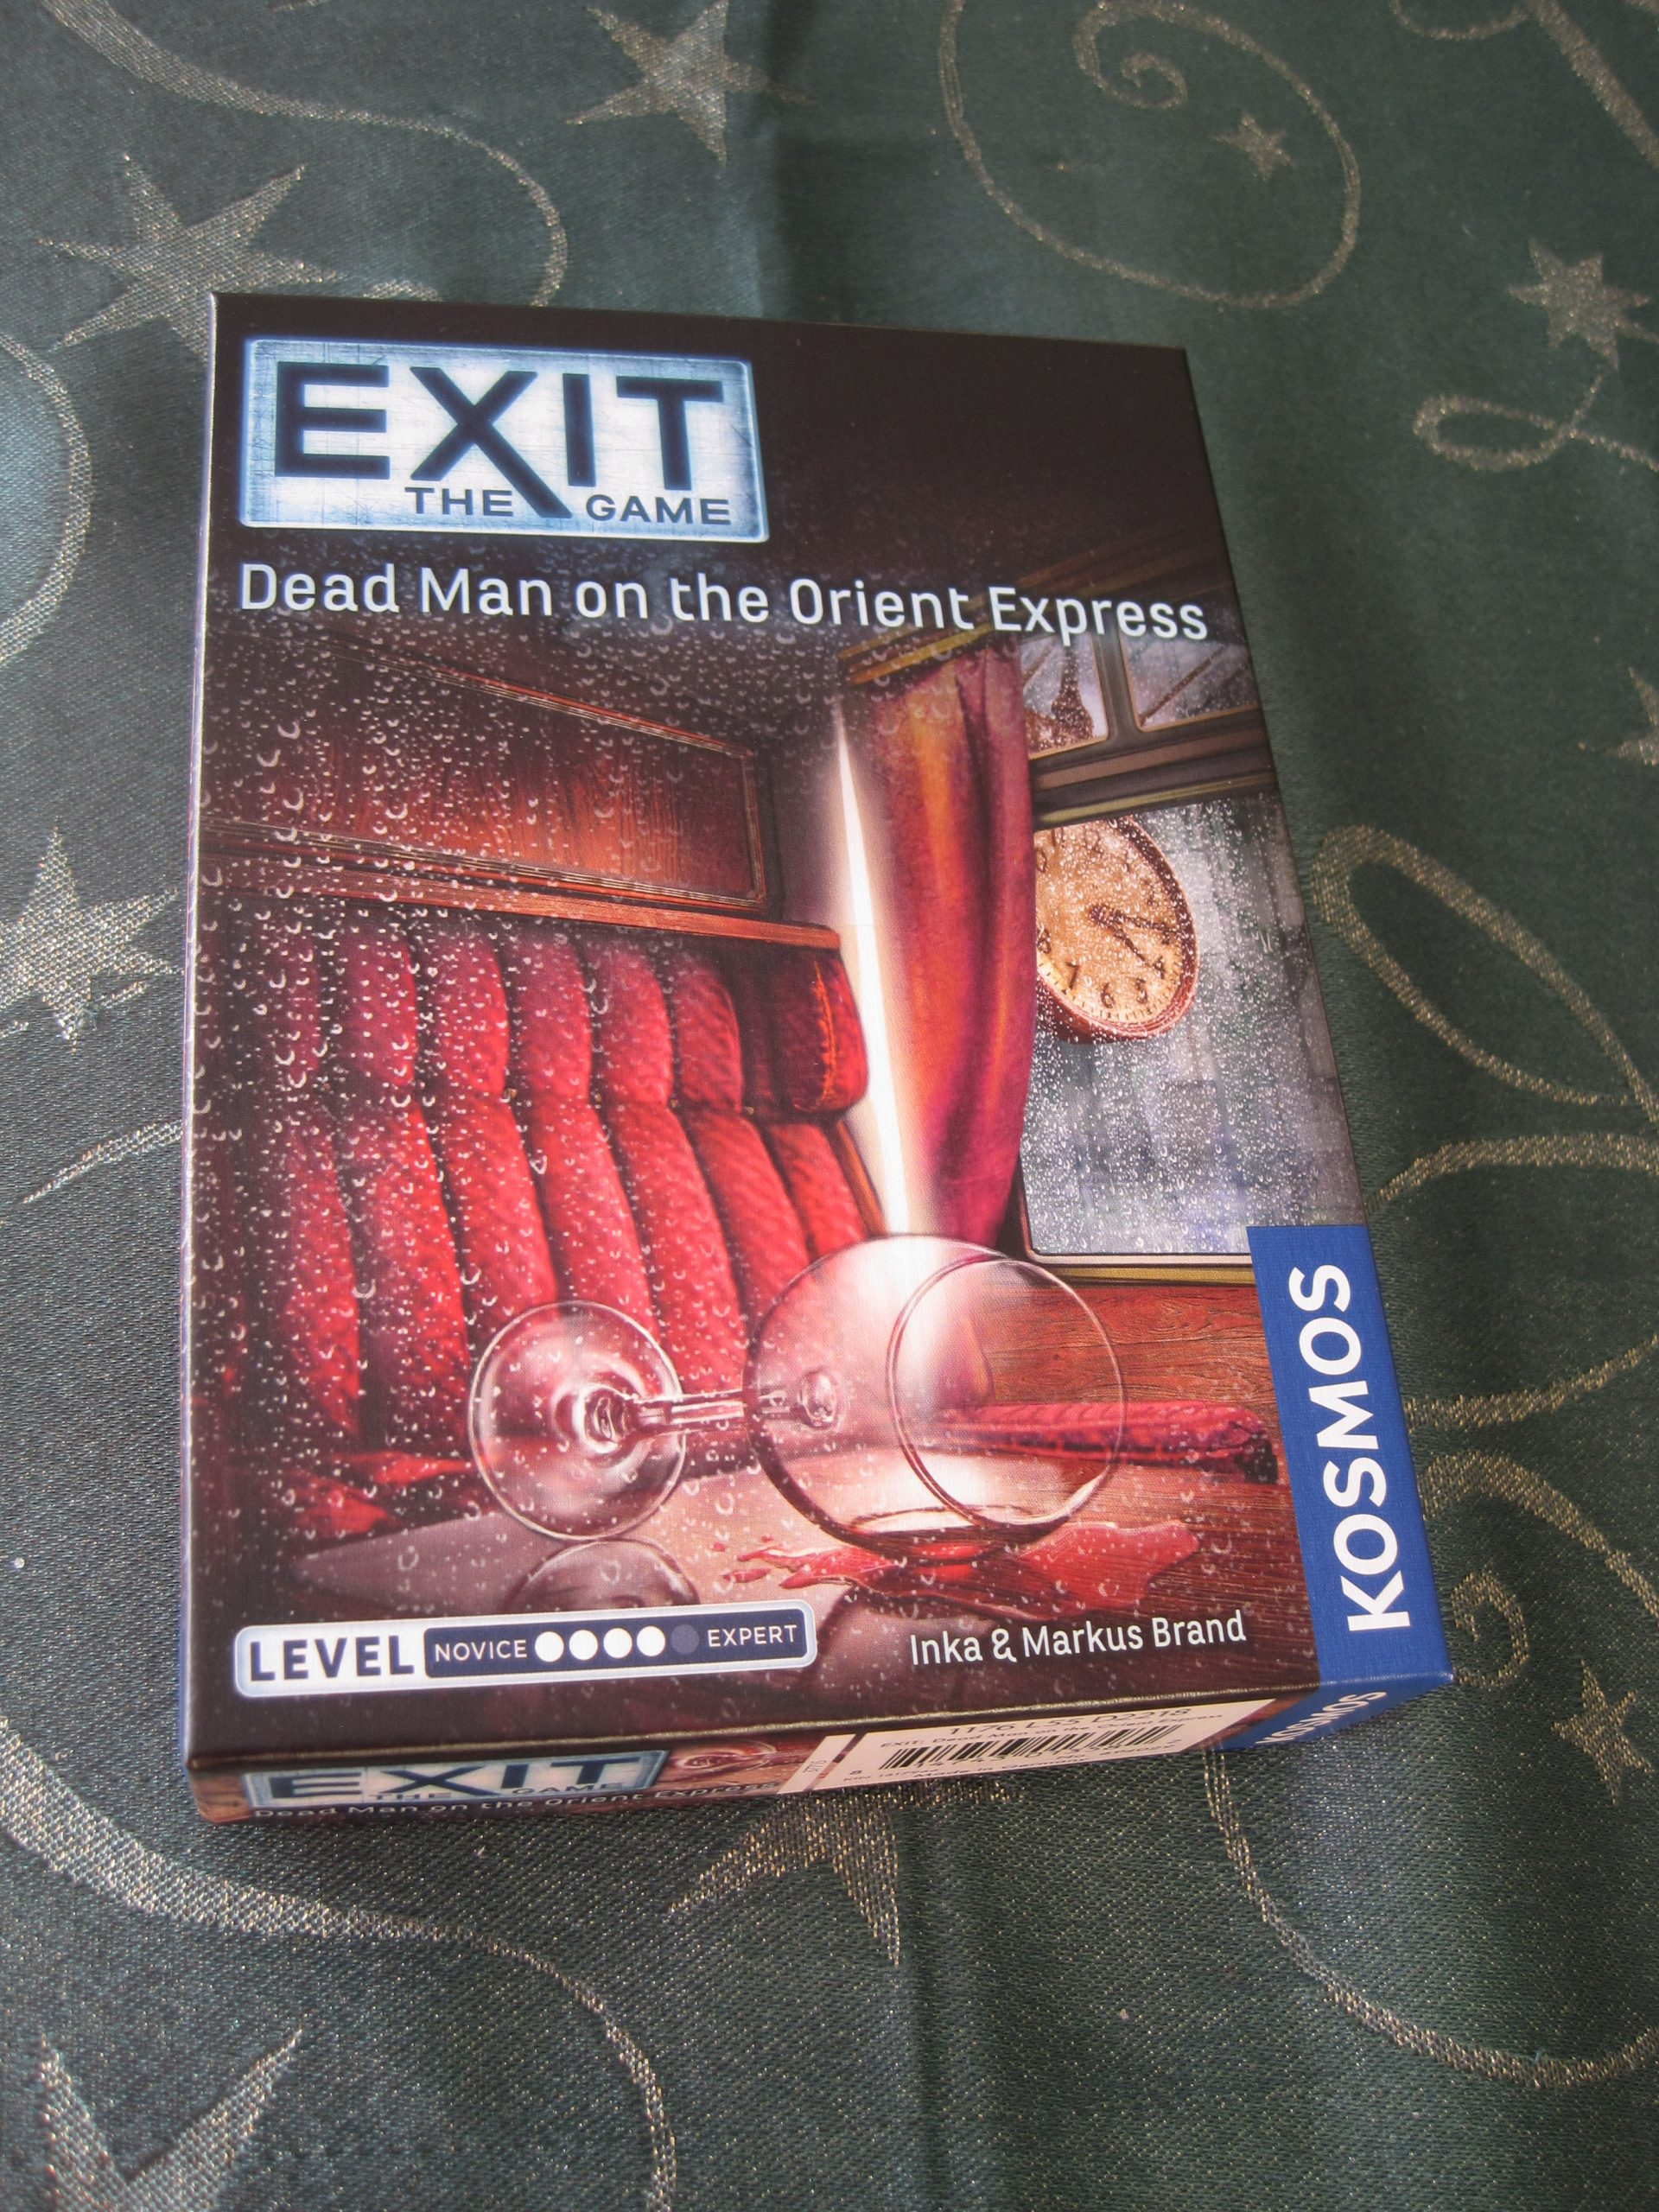 Dead Man on the Orient Express EXIT game - photo by juliamaud